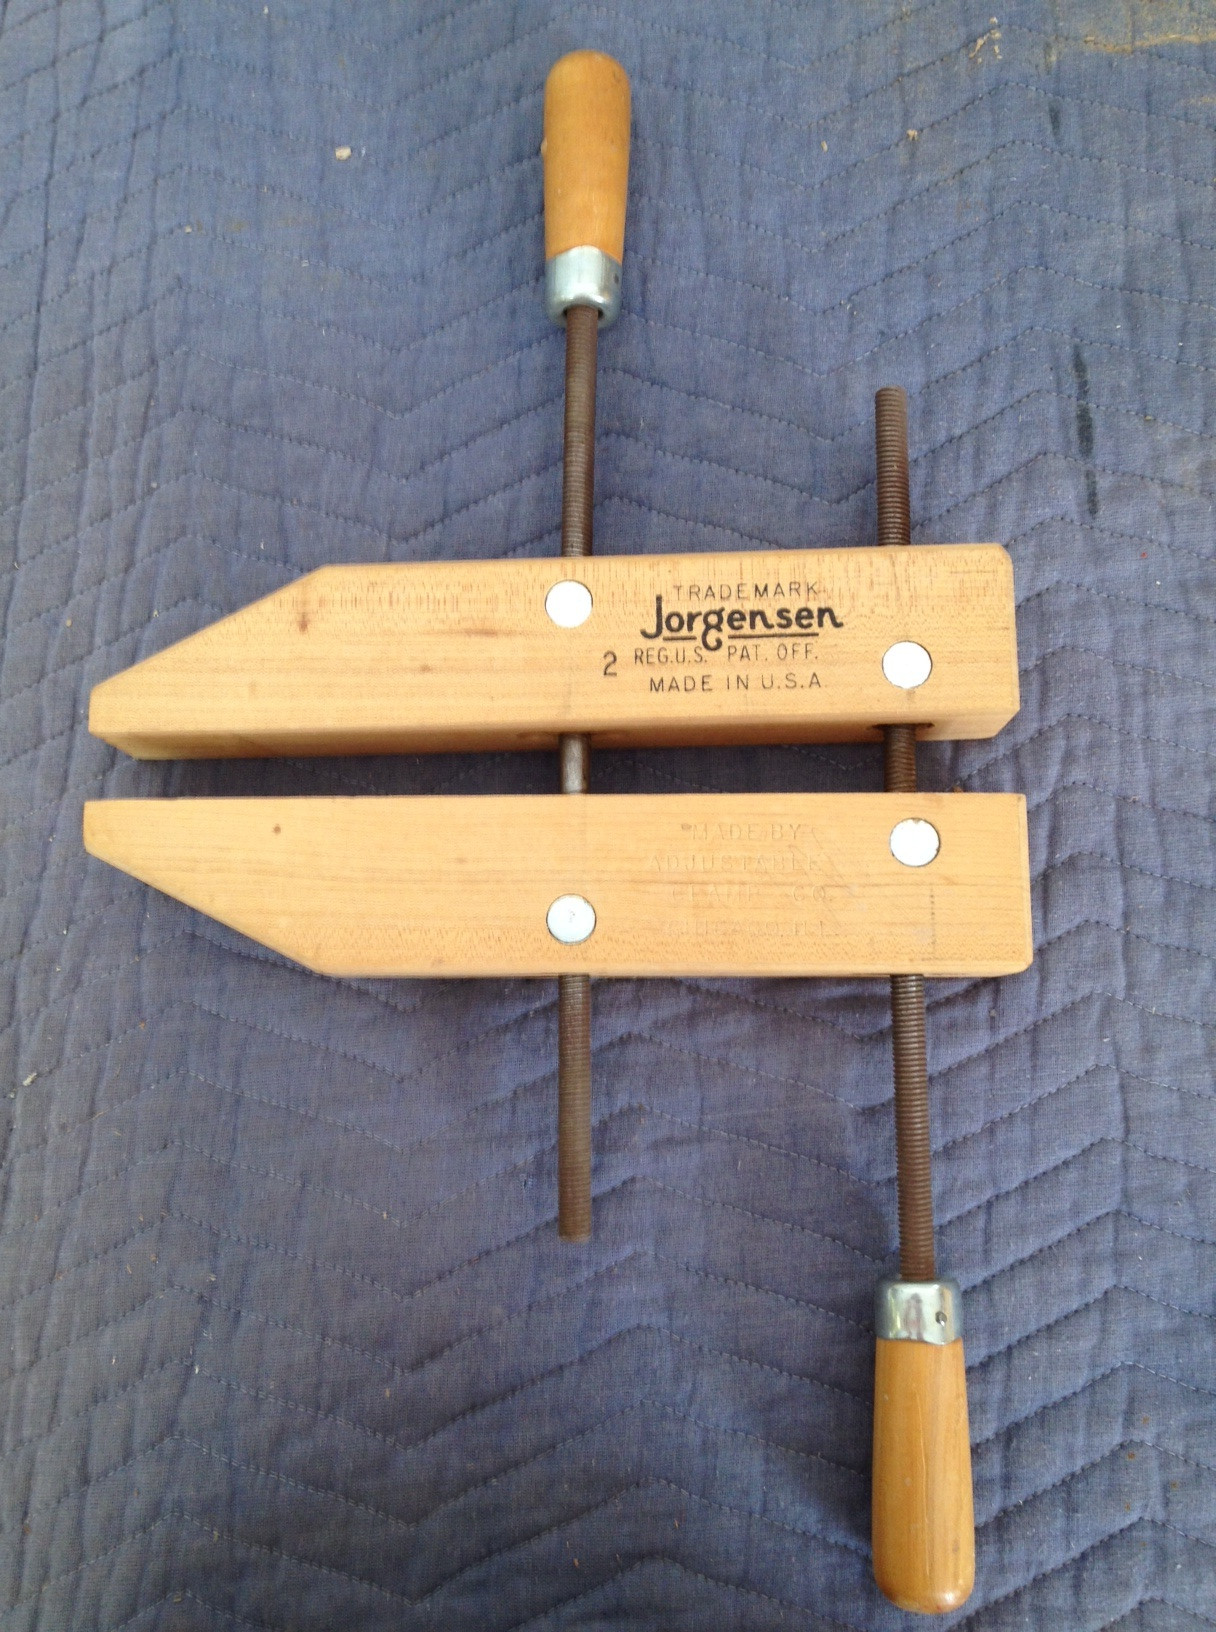 Best ideas about DIY Wood Clamp . Save or Pin DIY History Clamps Wooden PDF highland woodworking show Now.